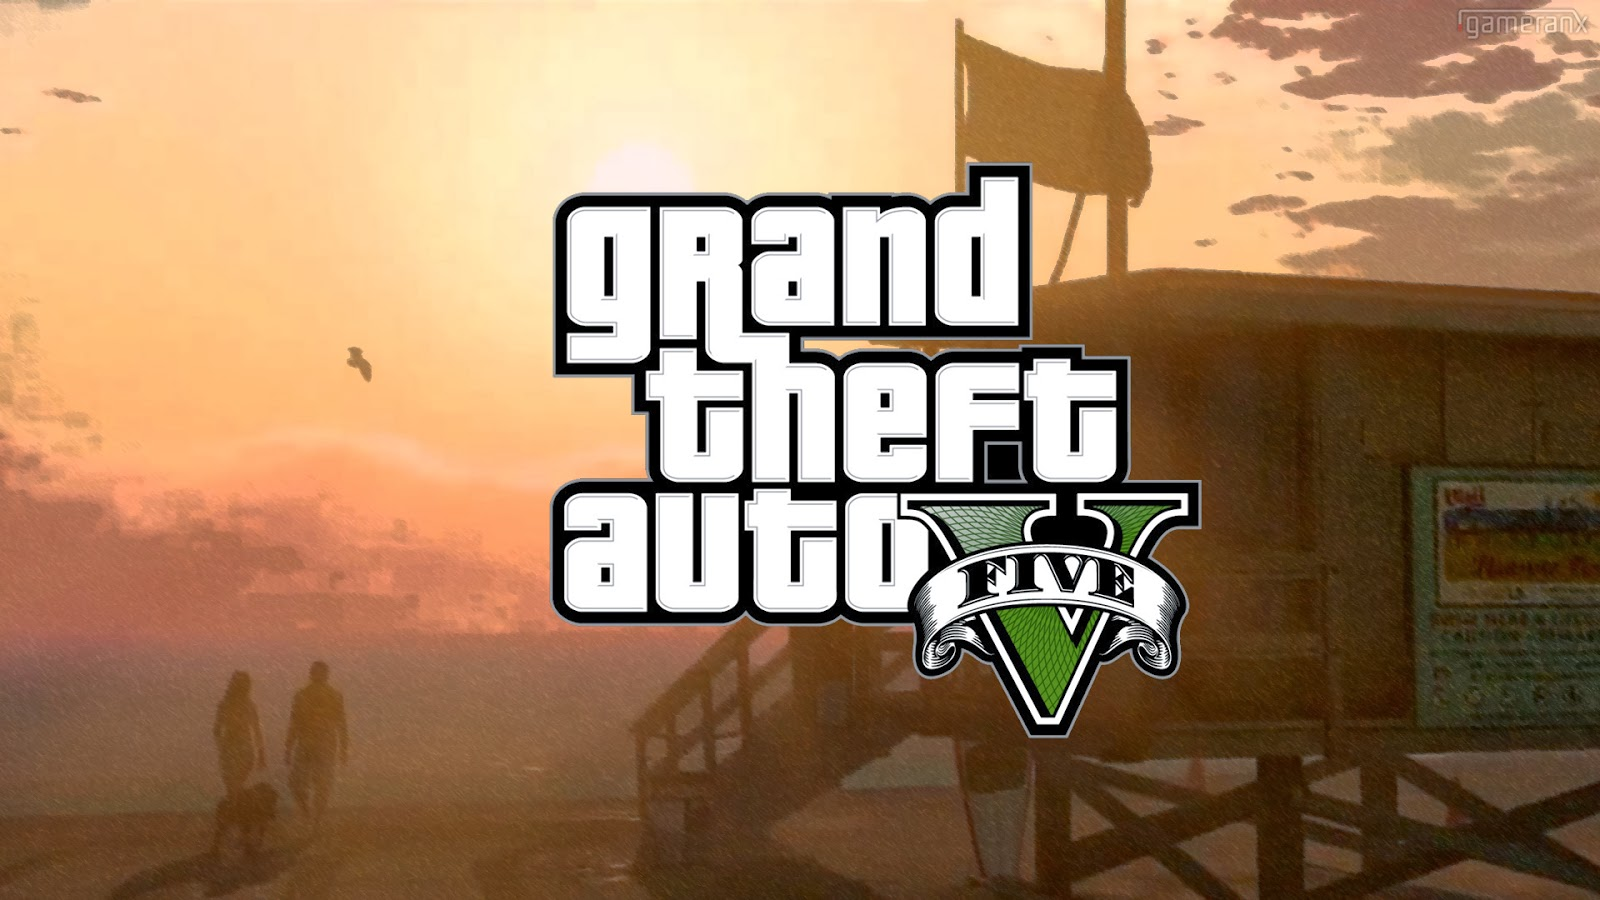 Grand Theft Auto 5 Wallpaper: Grand Theft Auto V HD 1080p Wallpapers